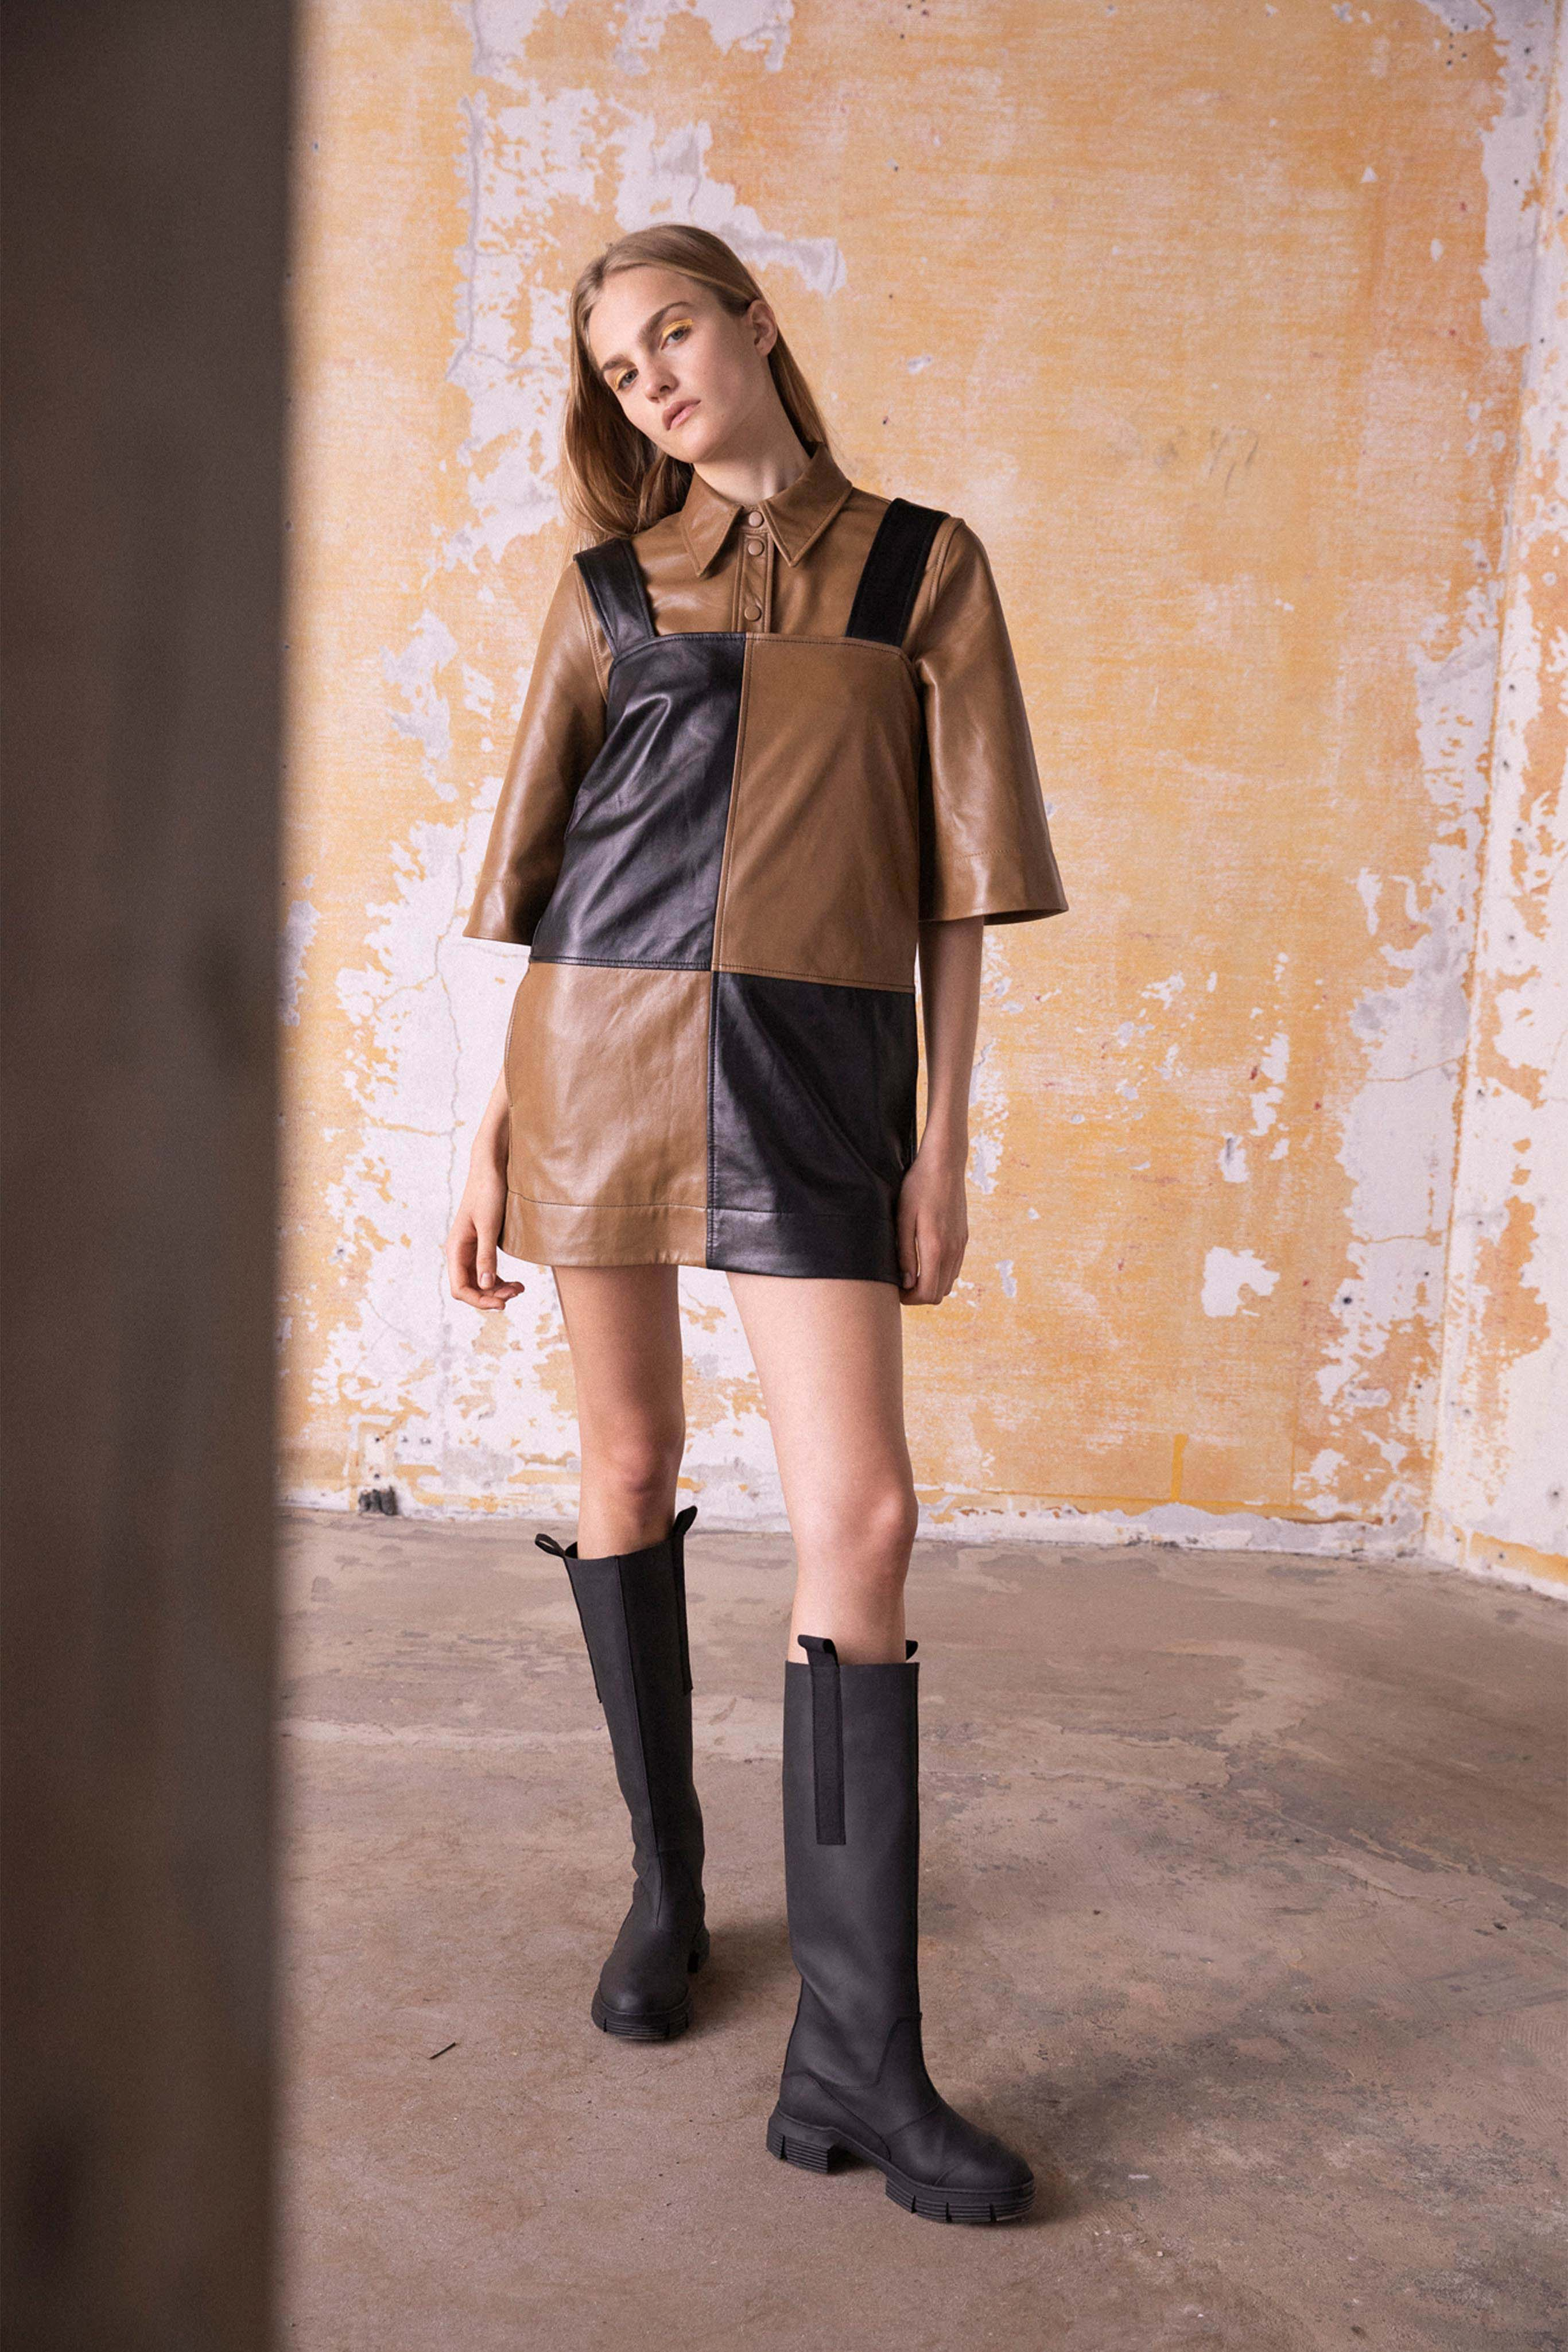 Ganni Pre fall 2020 Lookbook trends runway coverage Ready To Wear Vogue dual tones.jpg